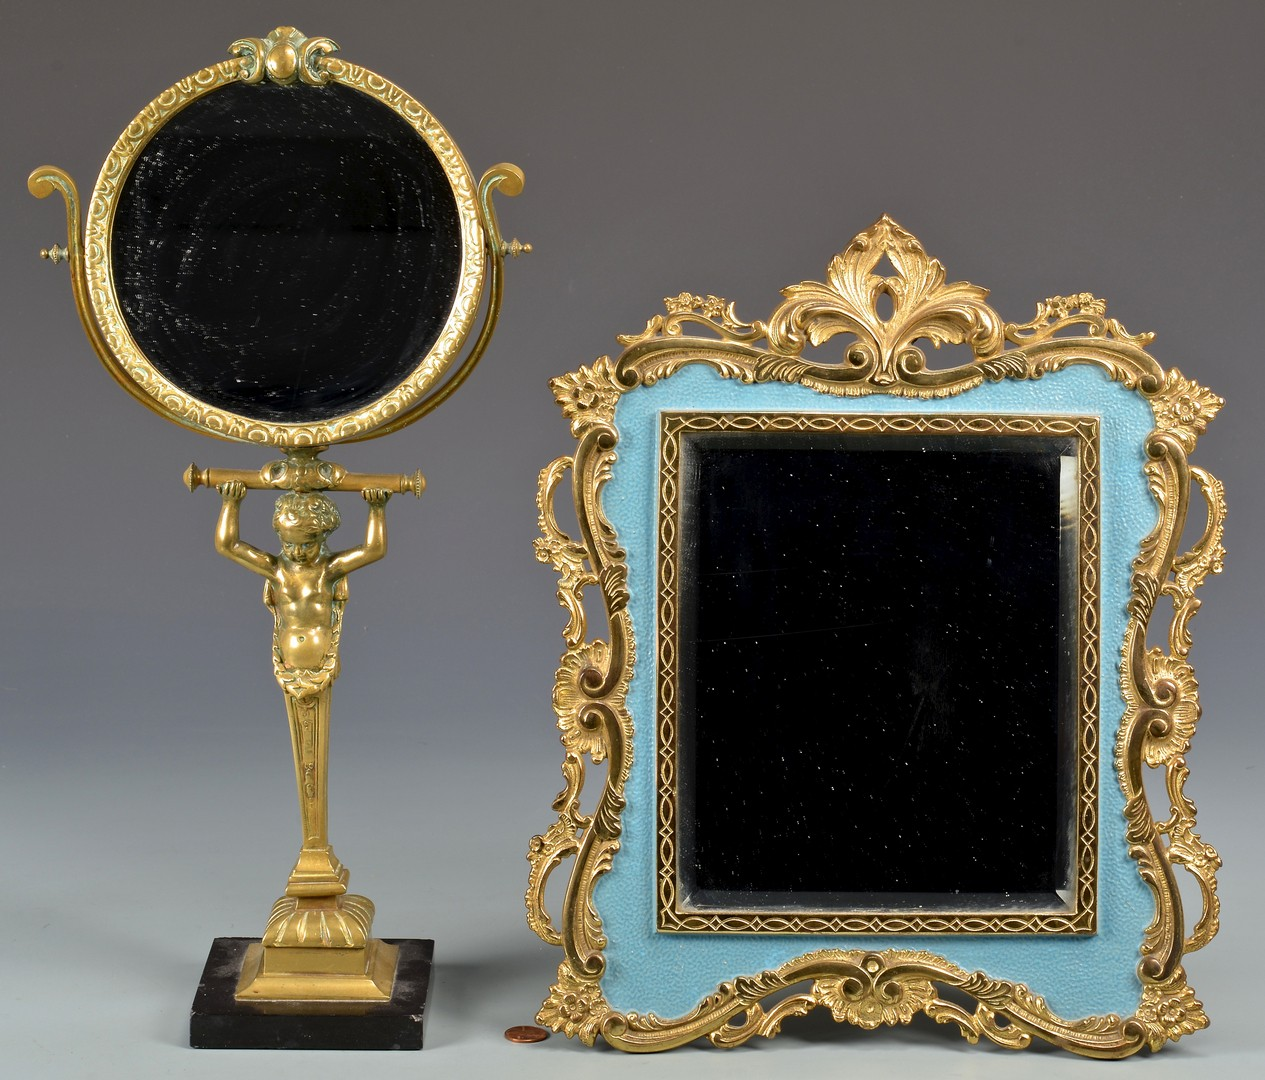 Lot 326: 2 Decorative Table Mirrors